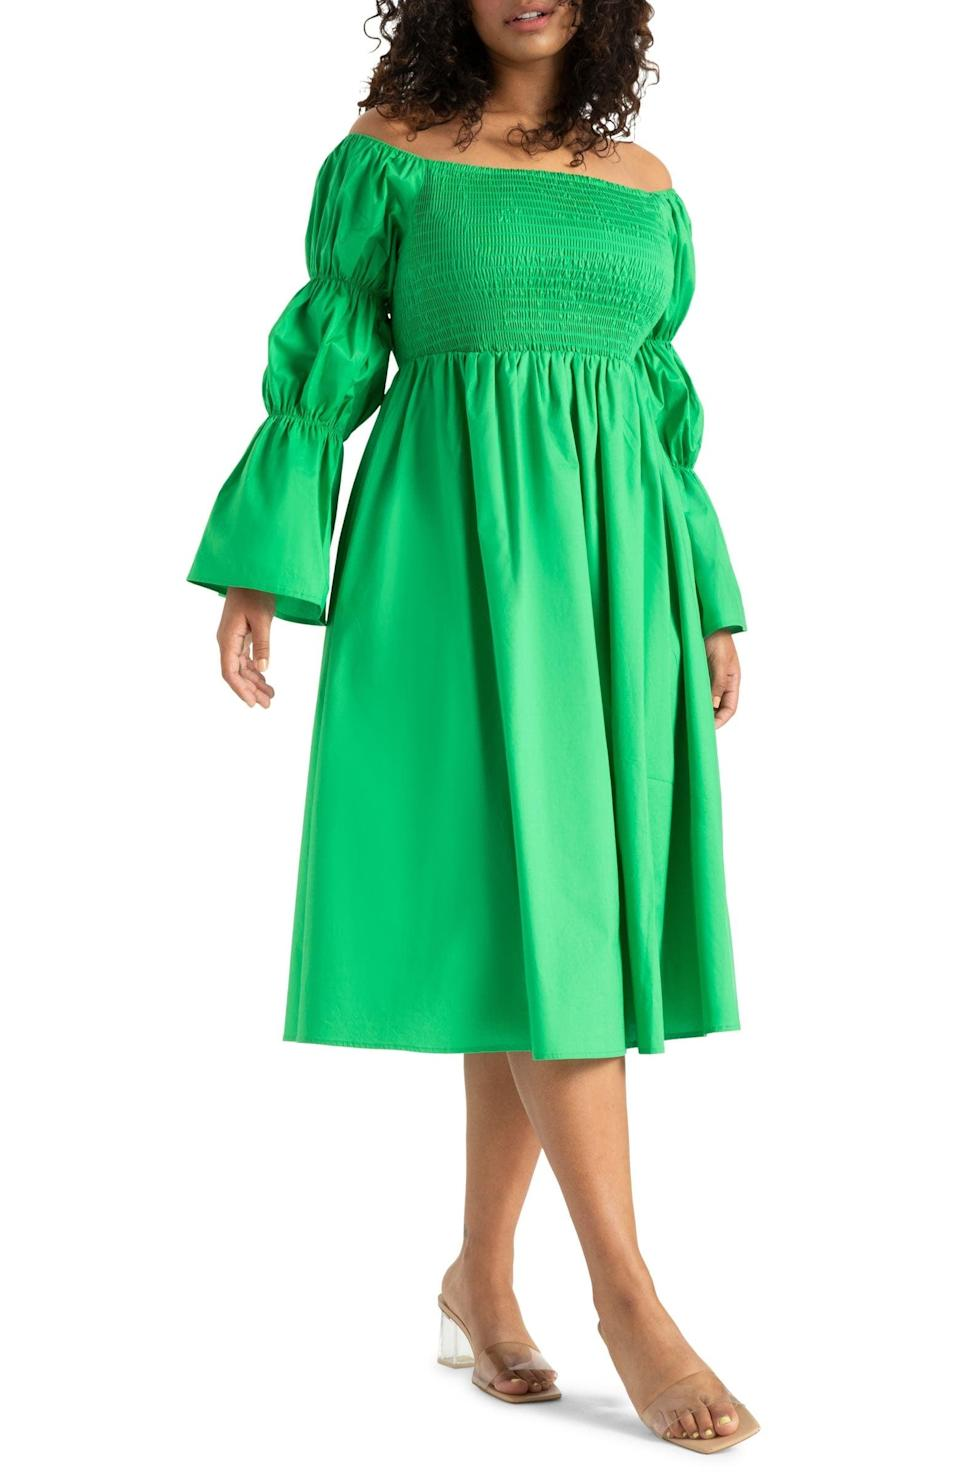 <p>For something a bit more dressy, go for this <span>ELOQUII Off the Shoulder Long Sleeve Midi Dress</span> ($72, originally $120).</p>